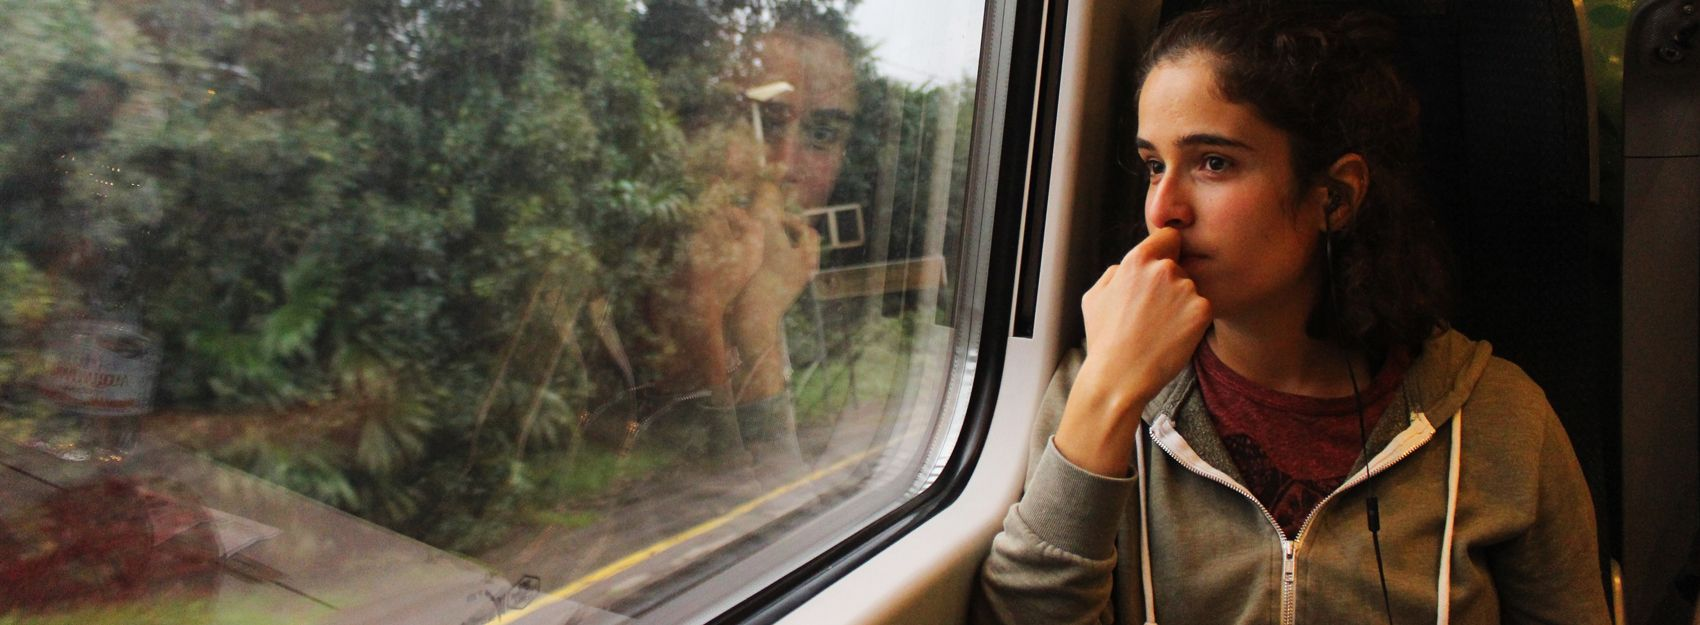 student sitting on train looking out the window with headphones in their ears